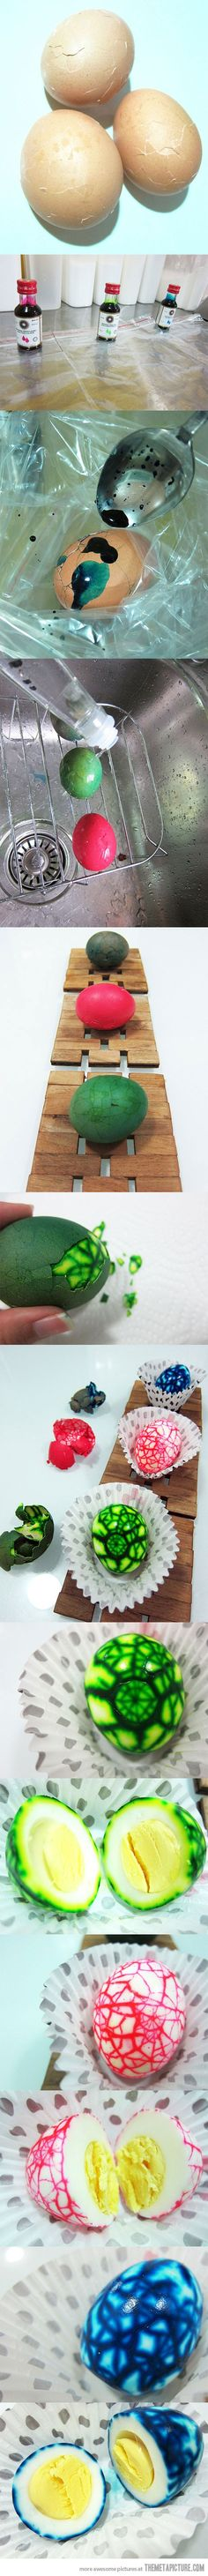 cool hard boiled eggs!